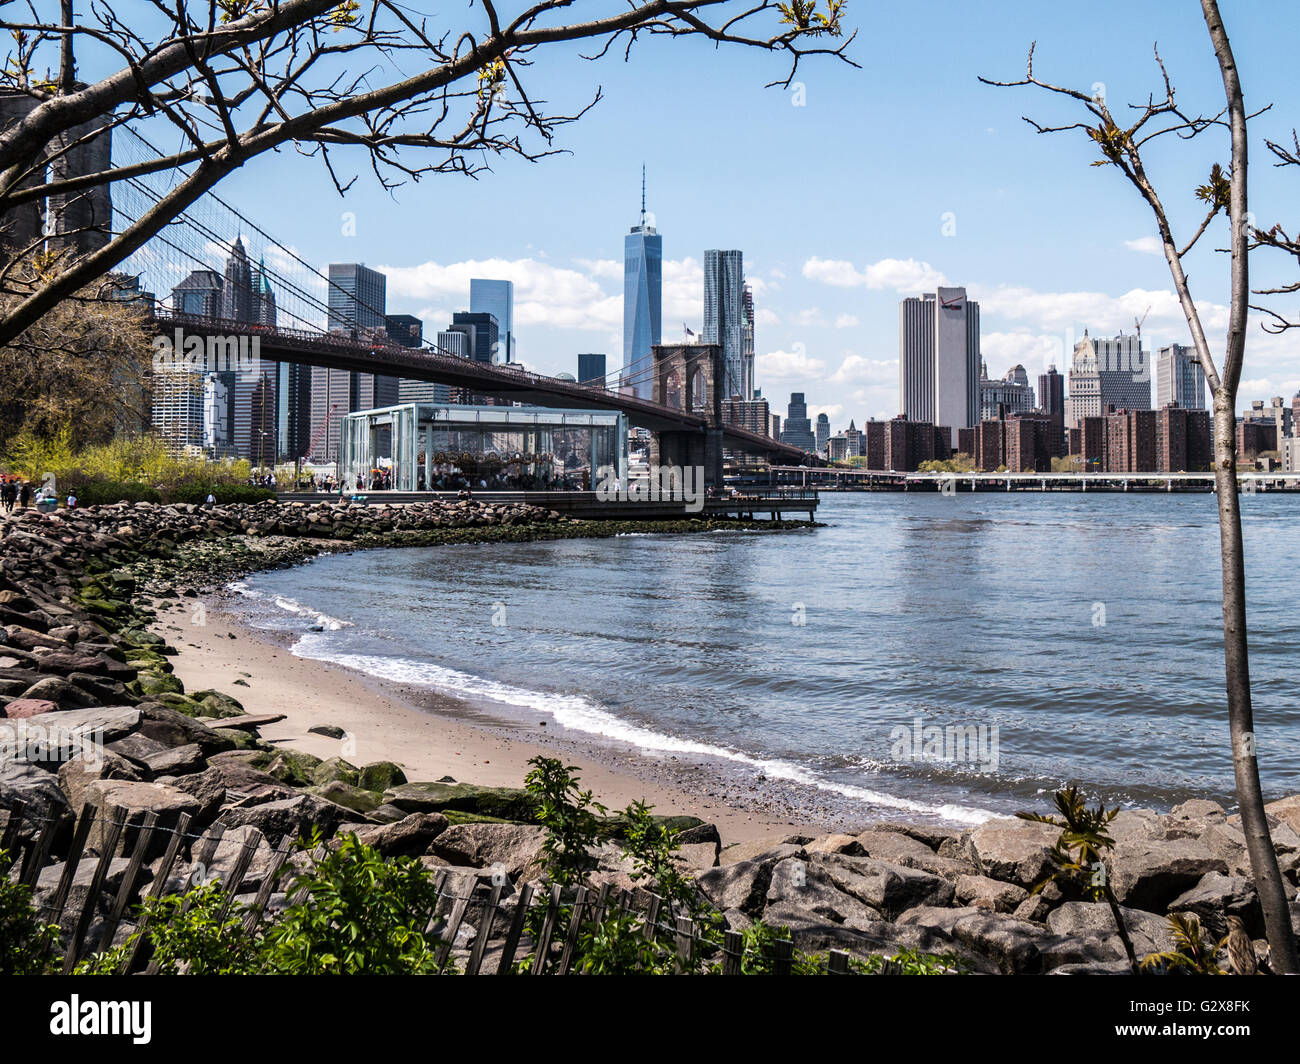 Brooklyn Bridge Park with Jane's Carousel and WTC - Stock Image